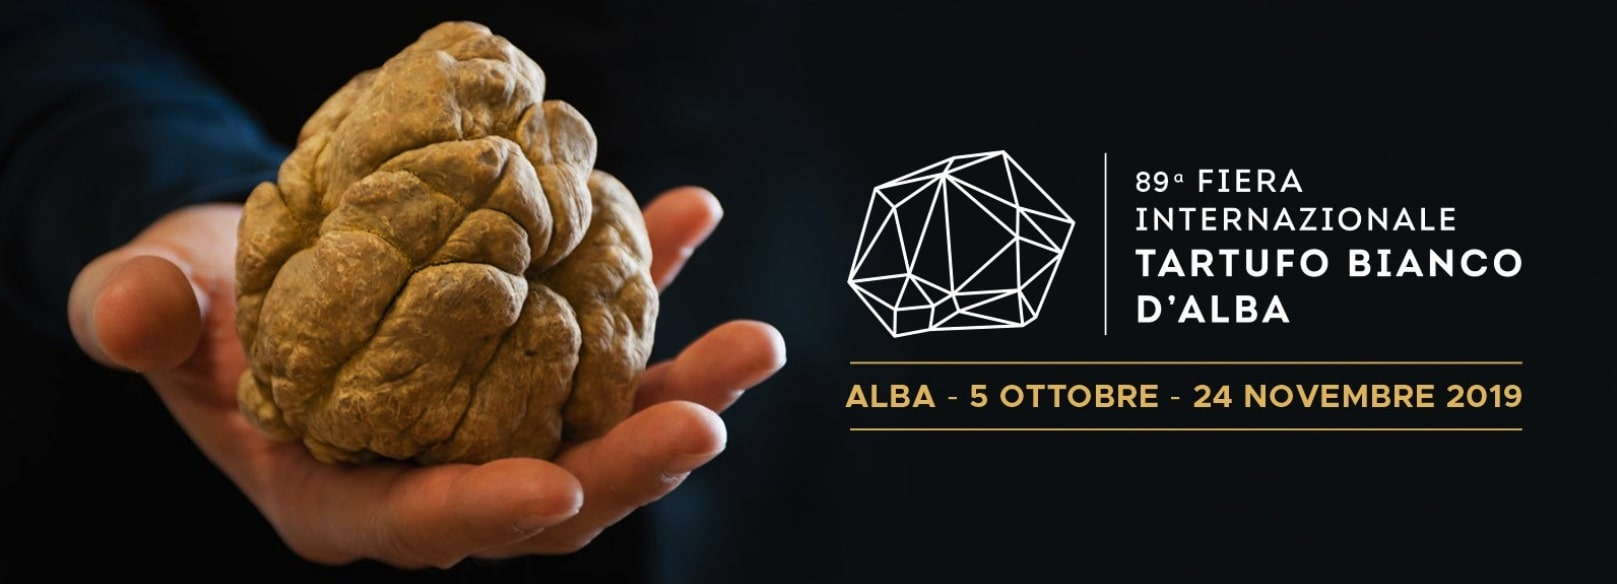 International Alba White Truffle Fair 2019